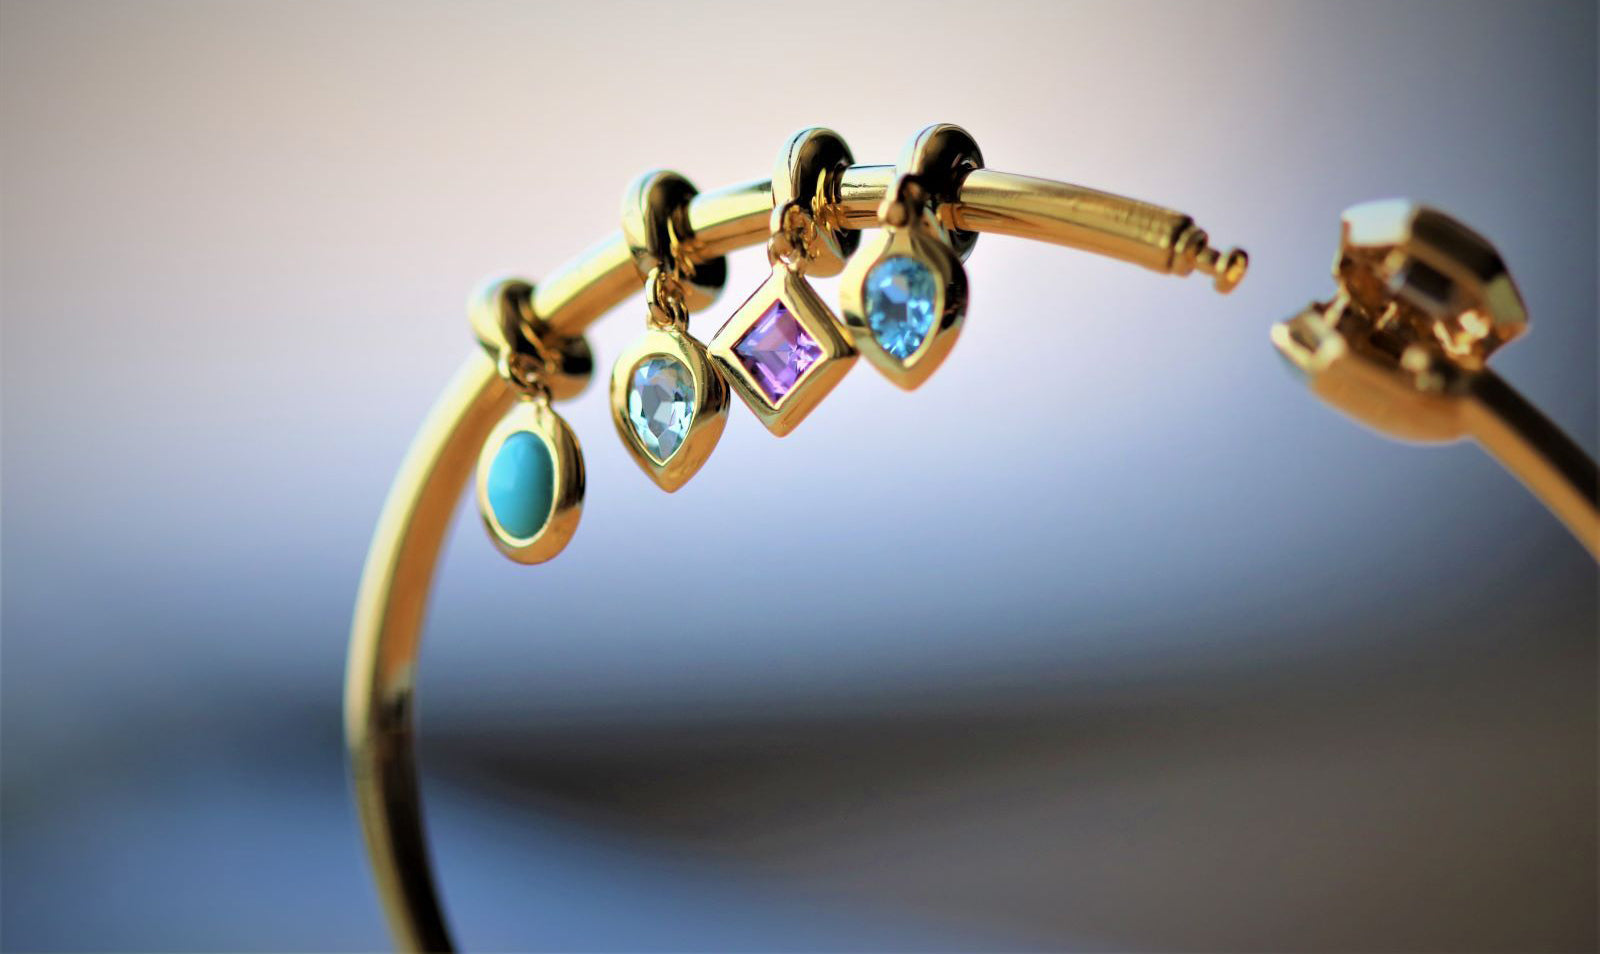 HS achievement charms and charm bangle